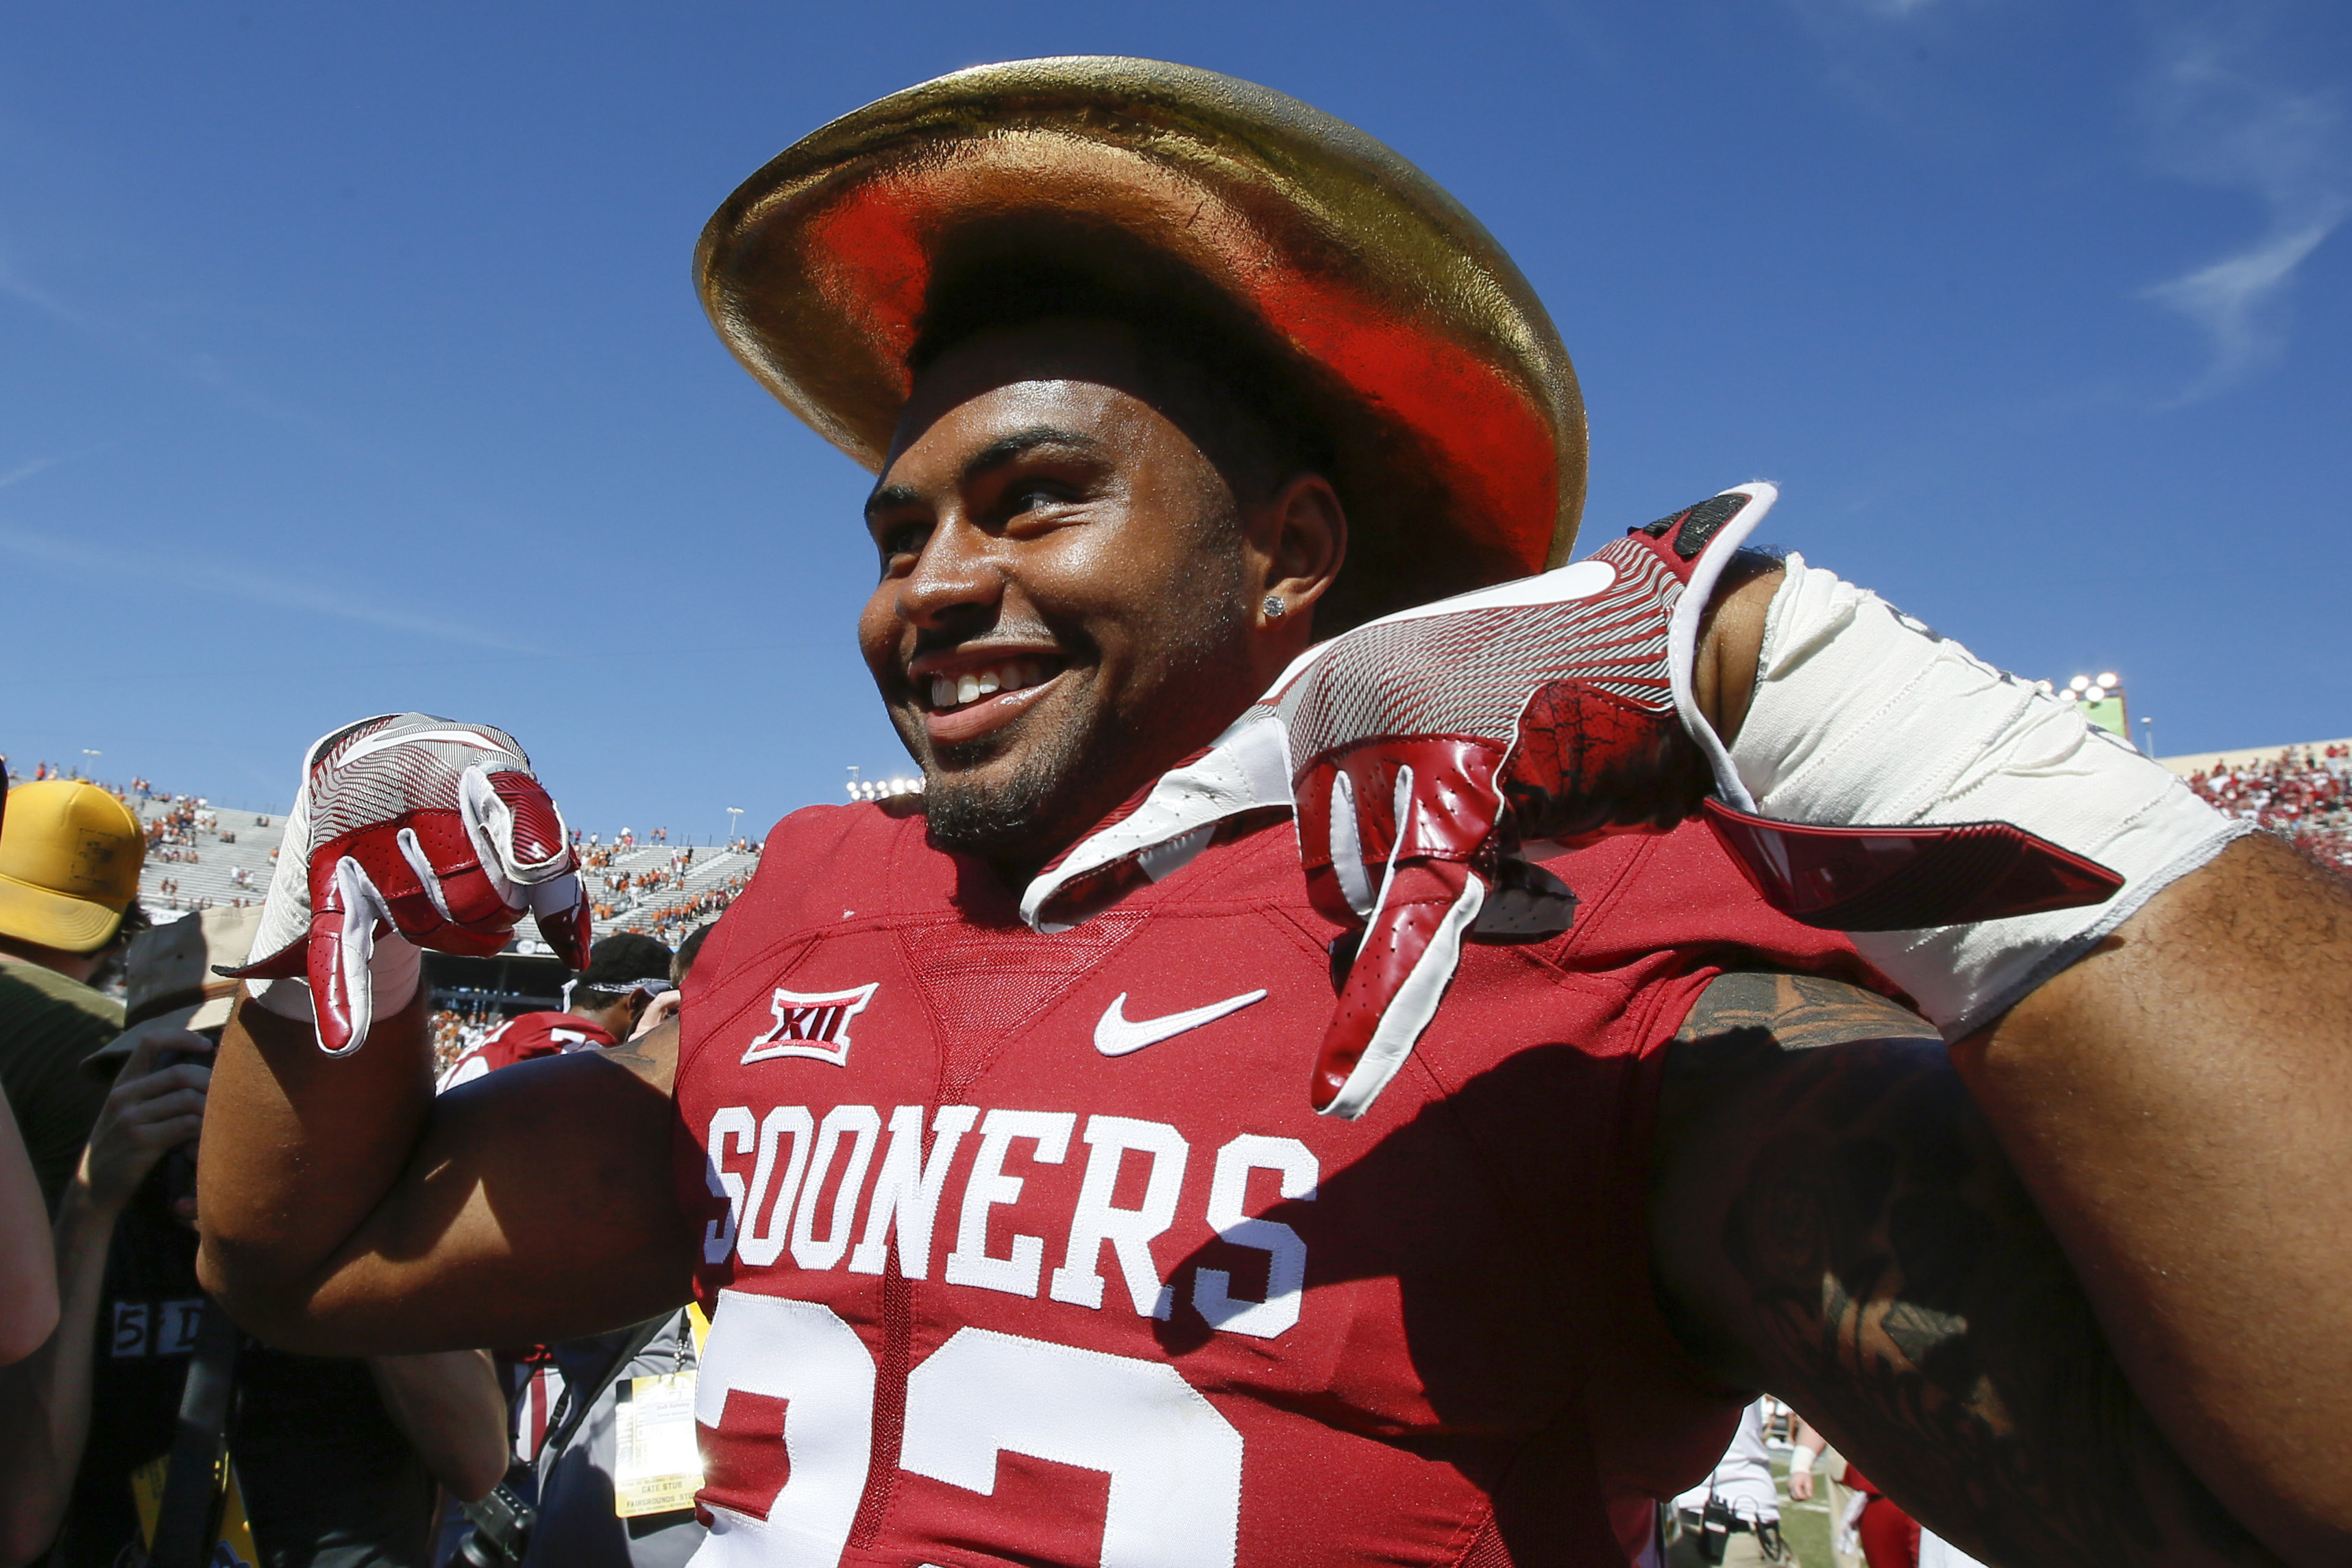 Bob Stoops refuses to wear the Golden Hat himself.  Probably a good call.